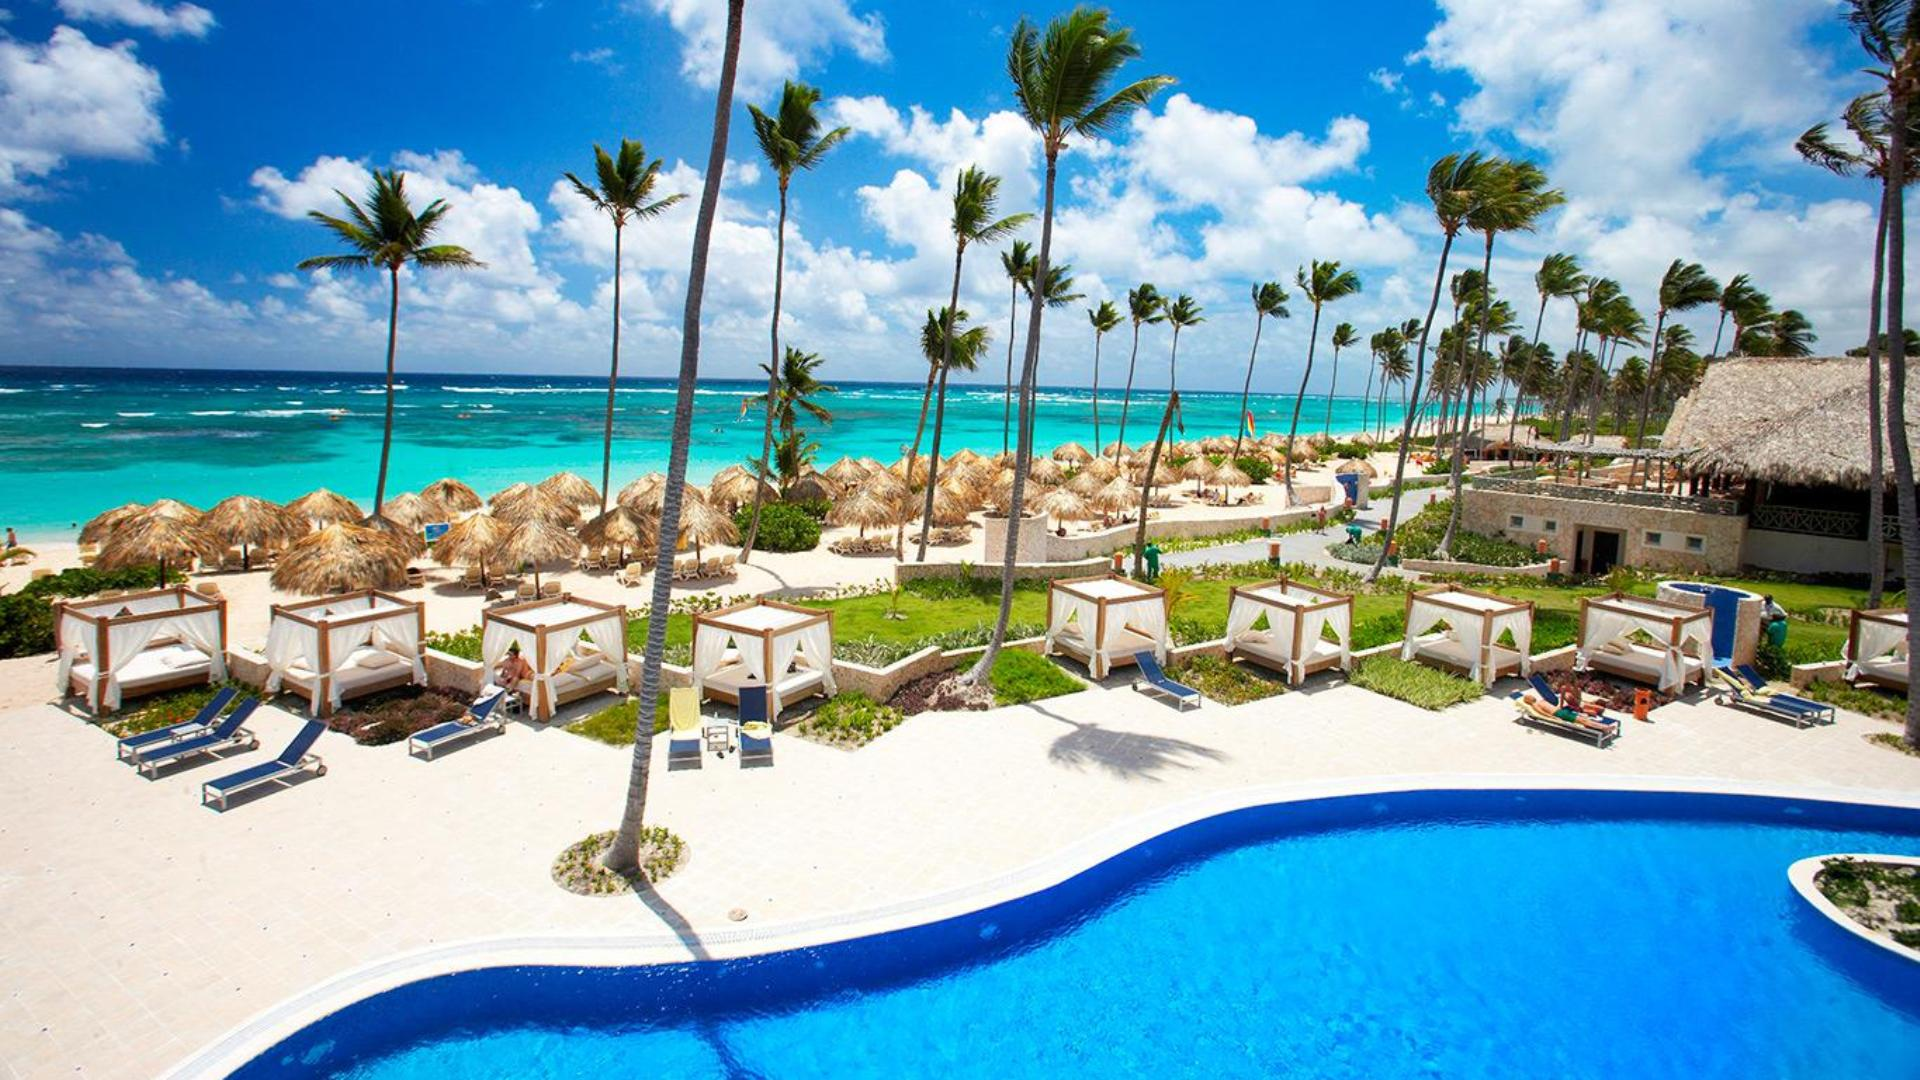 Group travel 100 300 usd per day in the dominican republic for Punta cana dominican republic vacation